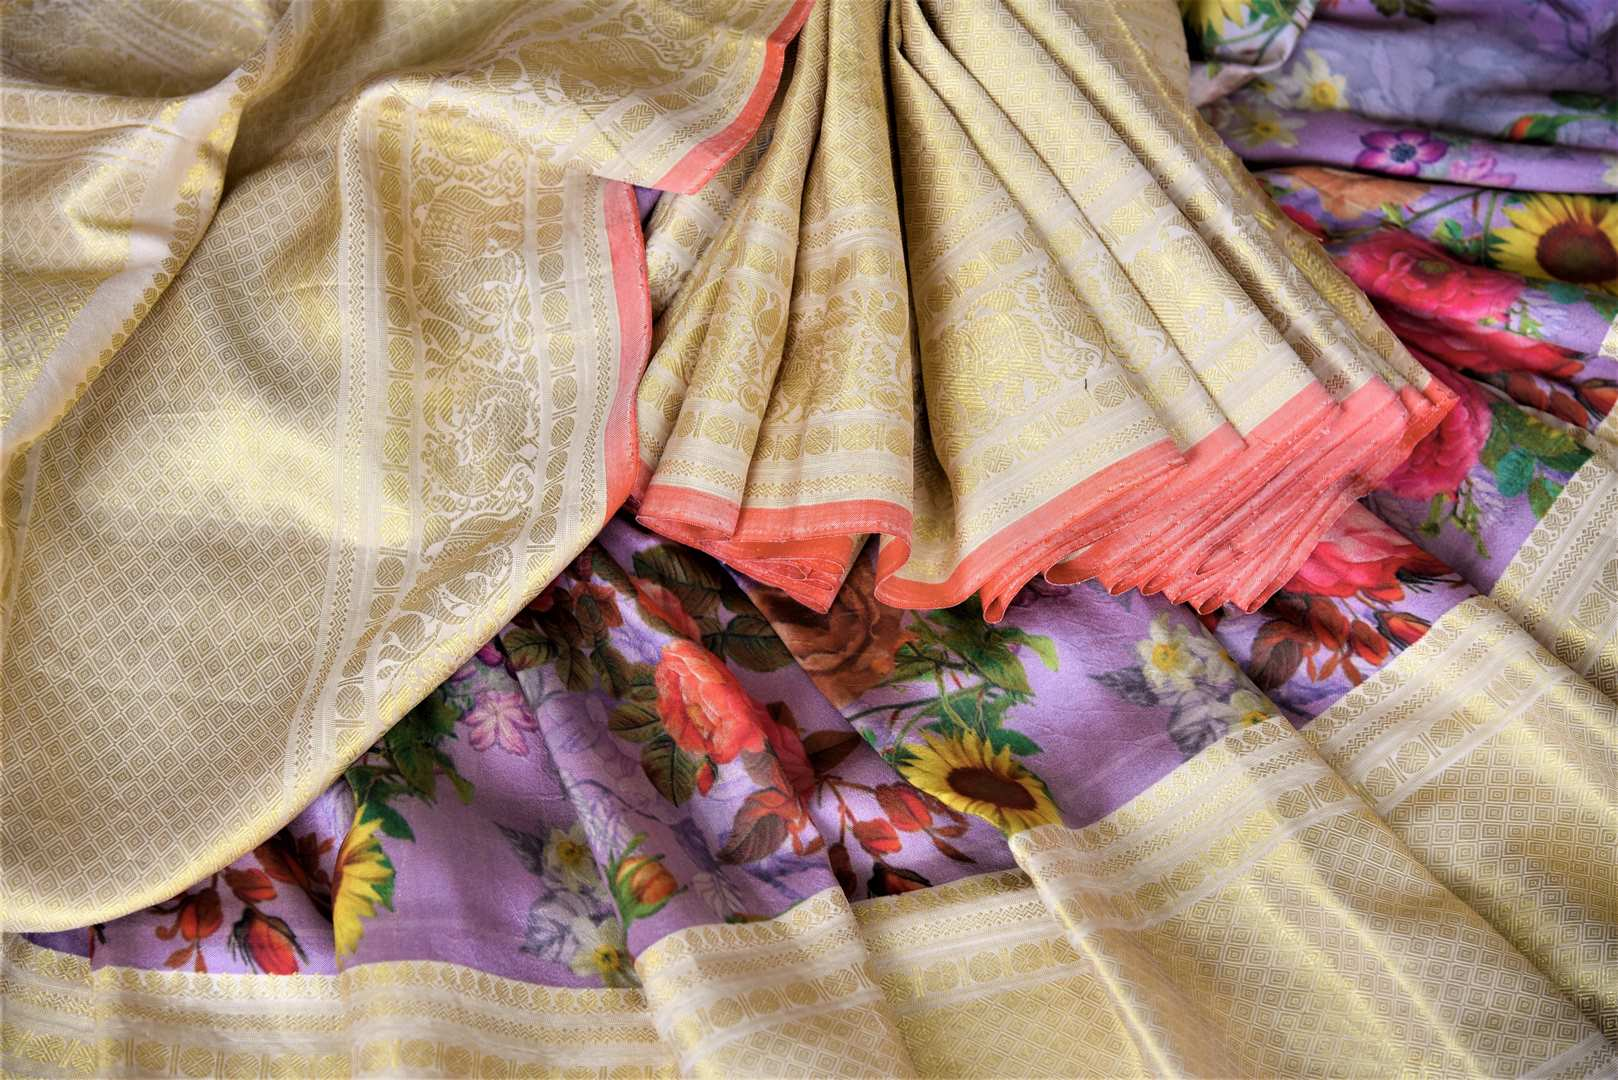 Shop beautiful lilac floral print Kanjivaram saree online in USA with golden zari border. Be the center of attraction at parties and weddings with beautiful Kanchipuram silk sarees, pure silk sarees, handwoven sarees, Banarasi sarees from Pure Elegance Indian fashion store in USA.-details